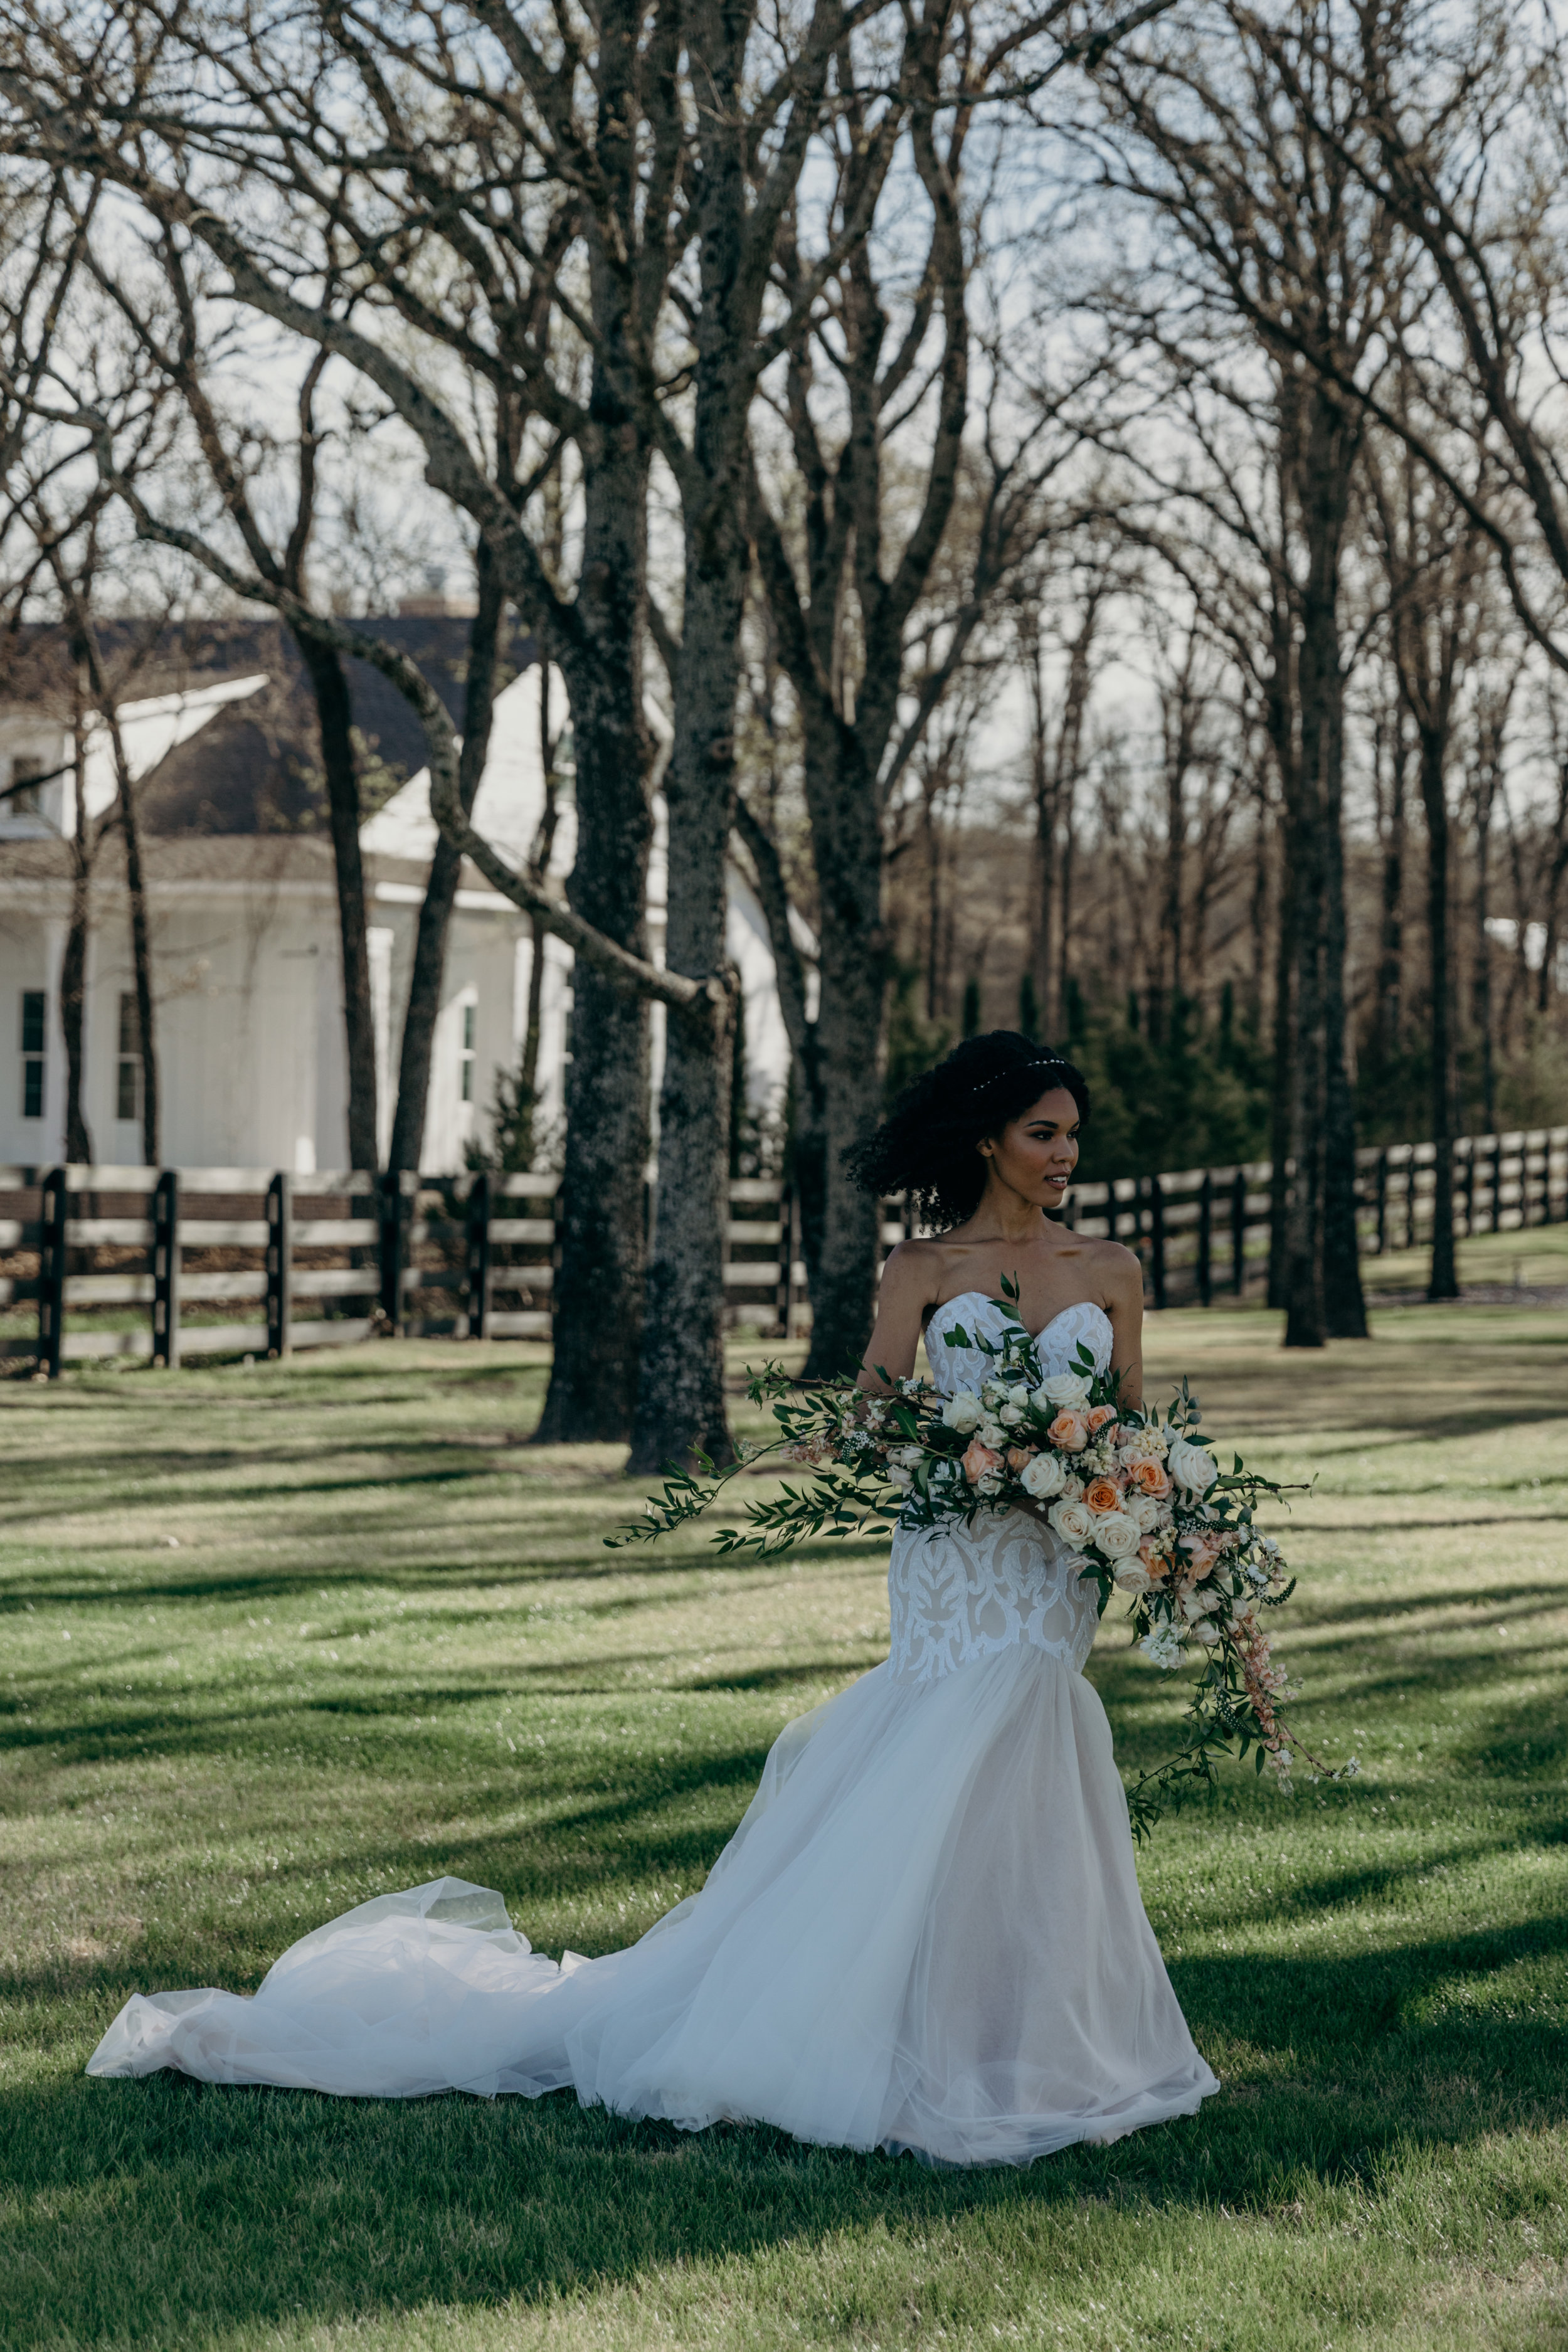 TheWhiteSparrowStyledWeddingShootinTexas-69.jpg